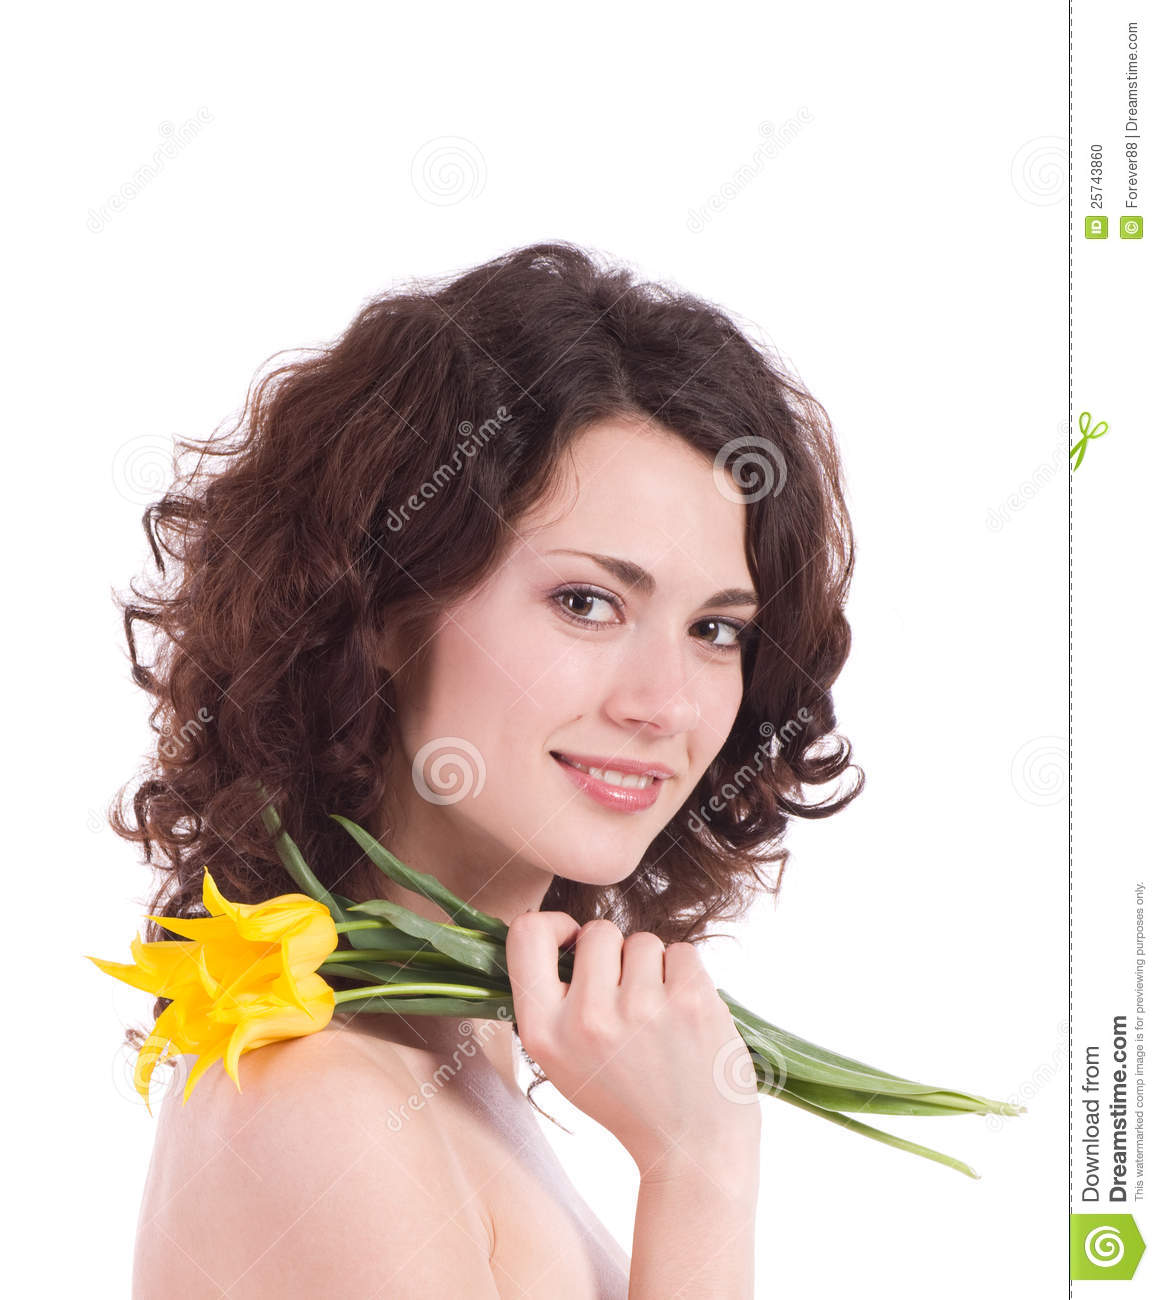 Woman portrait with yellow flowers